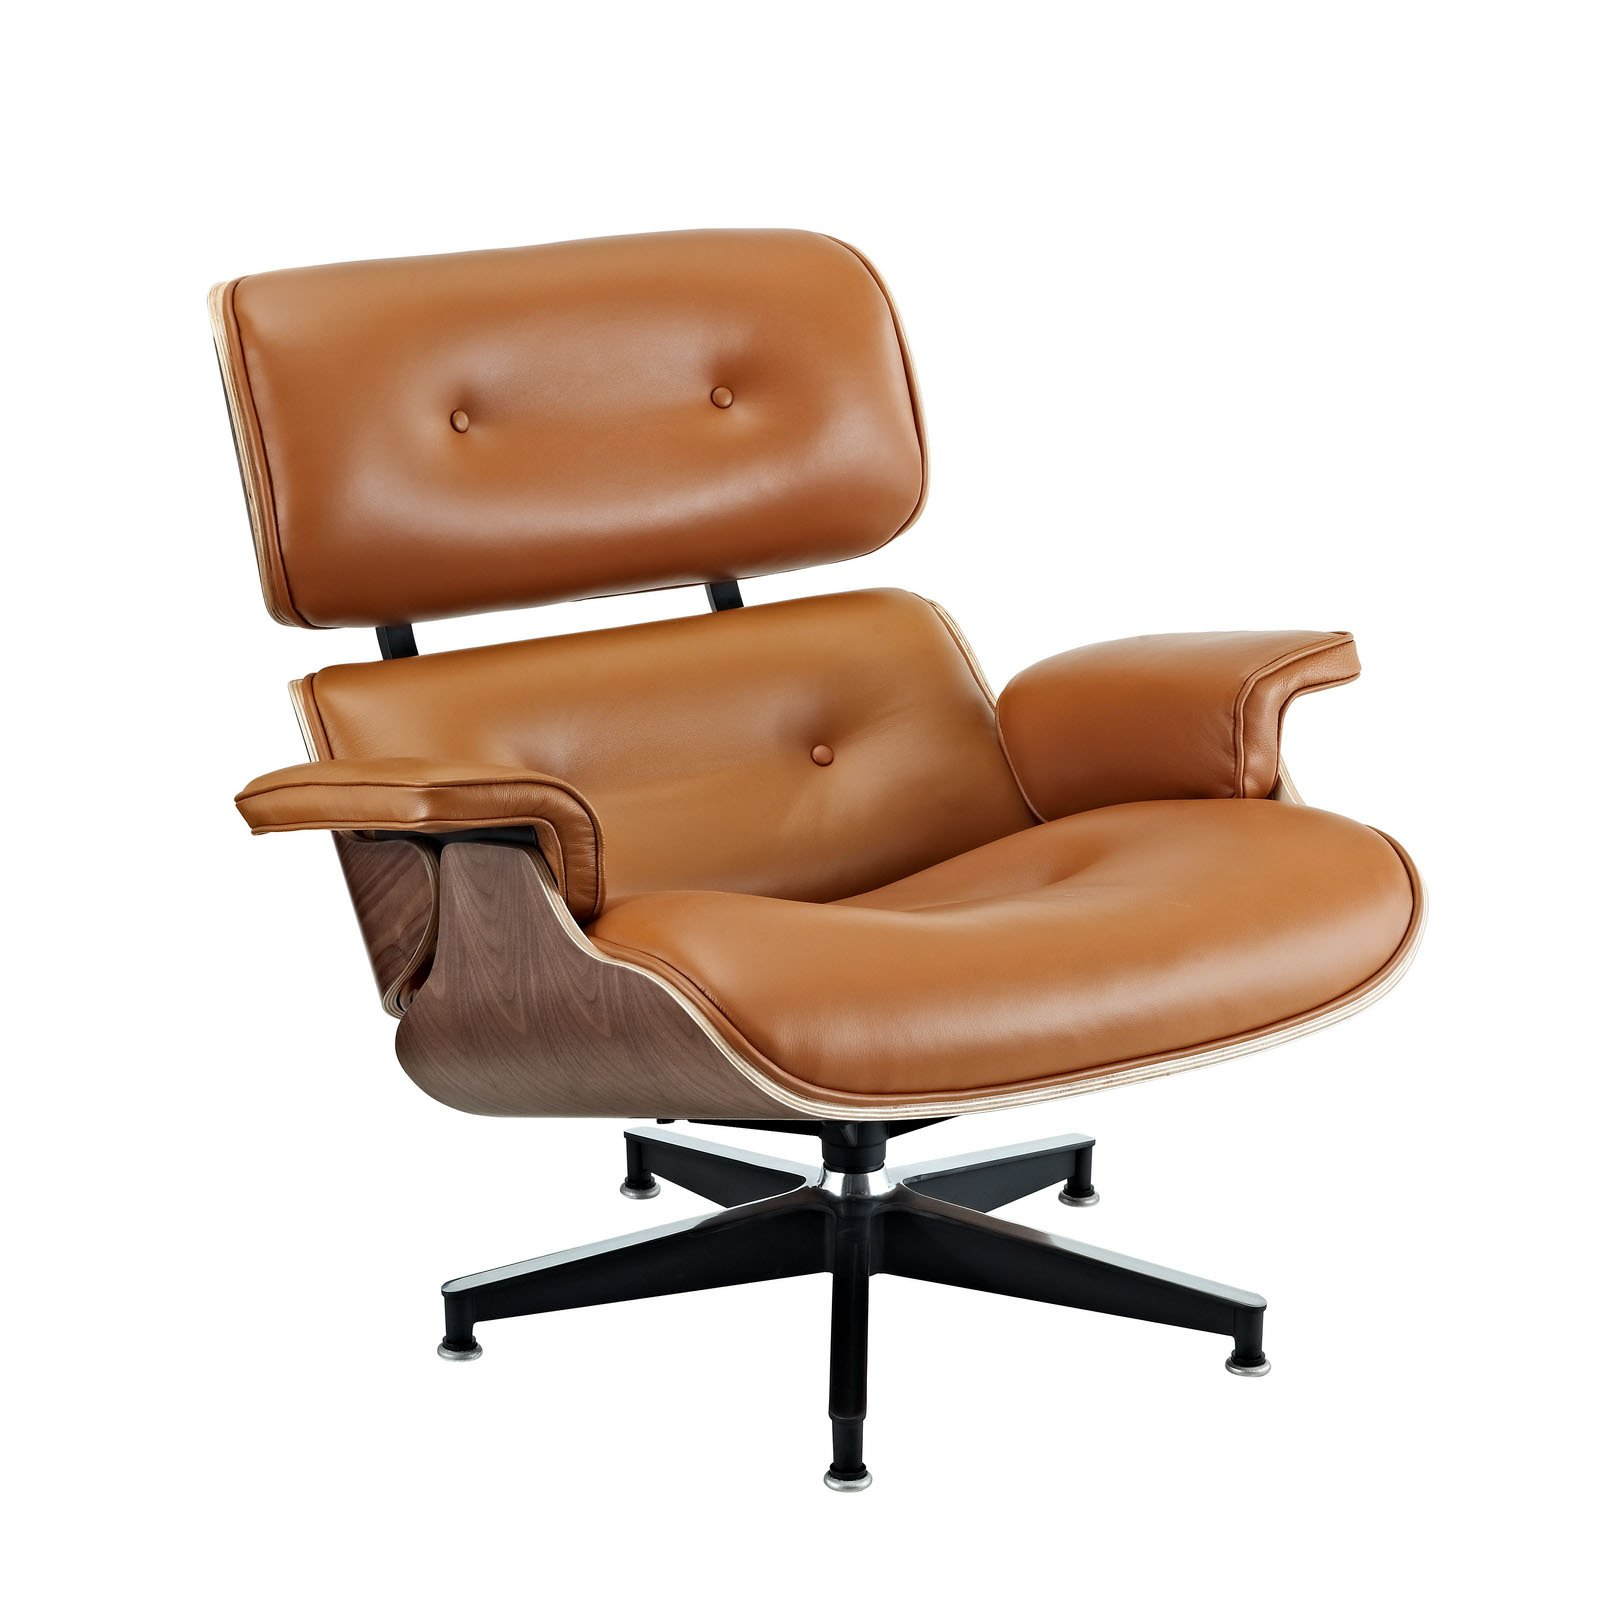 Tan leather office chair - Lexmod Eaze Lounge Chair In Terracotta Leather And Dark Walnut Wood